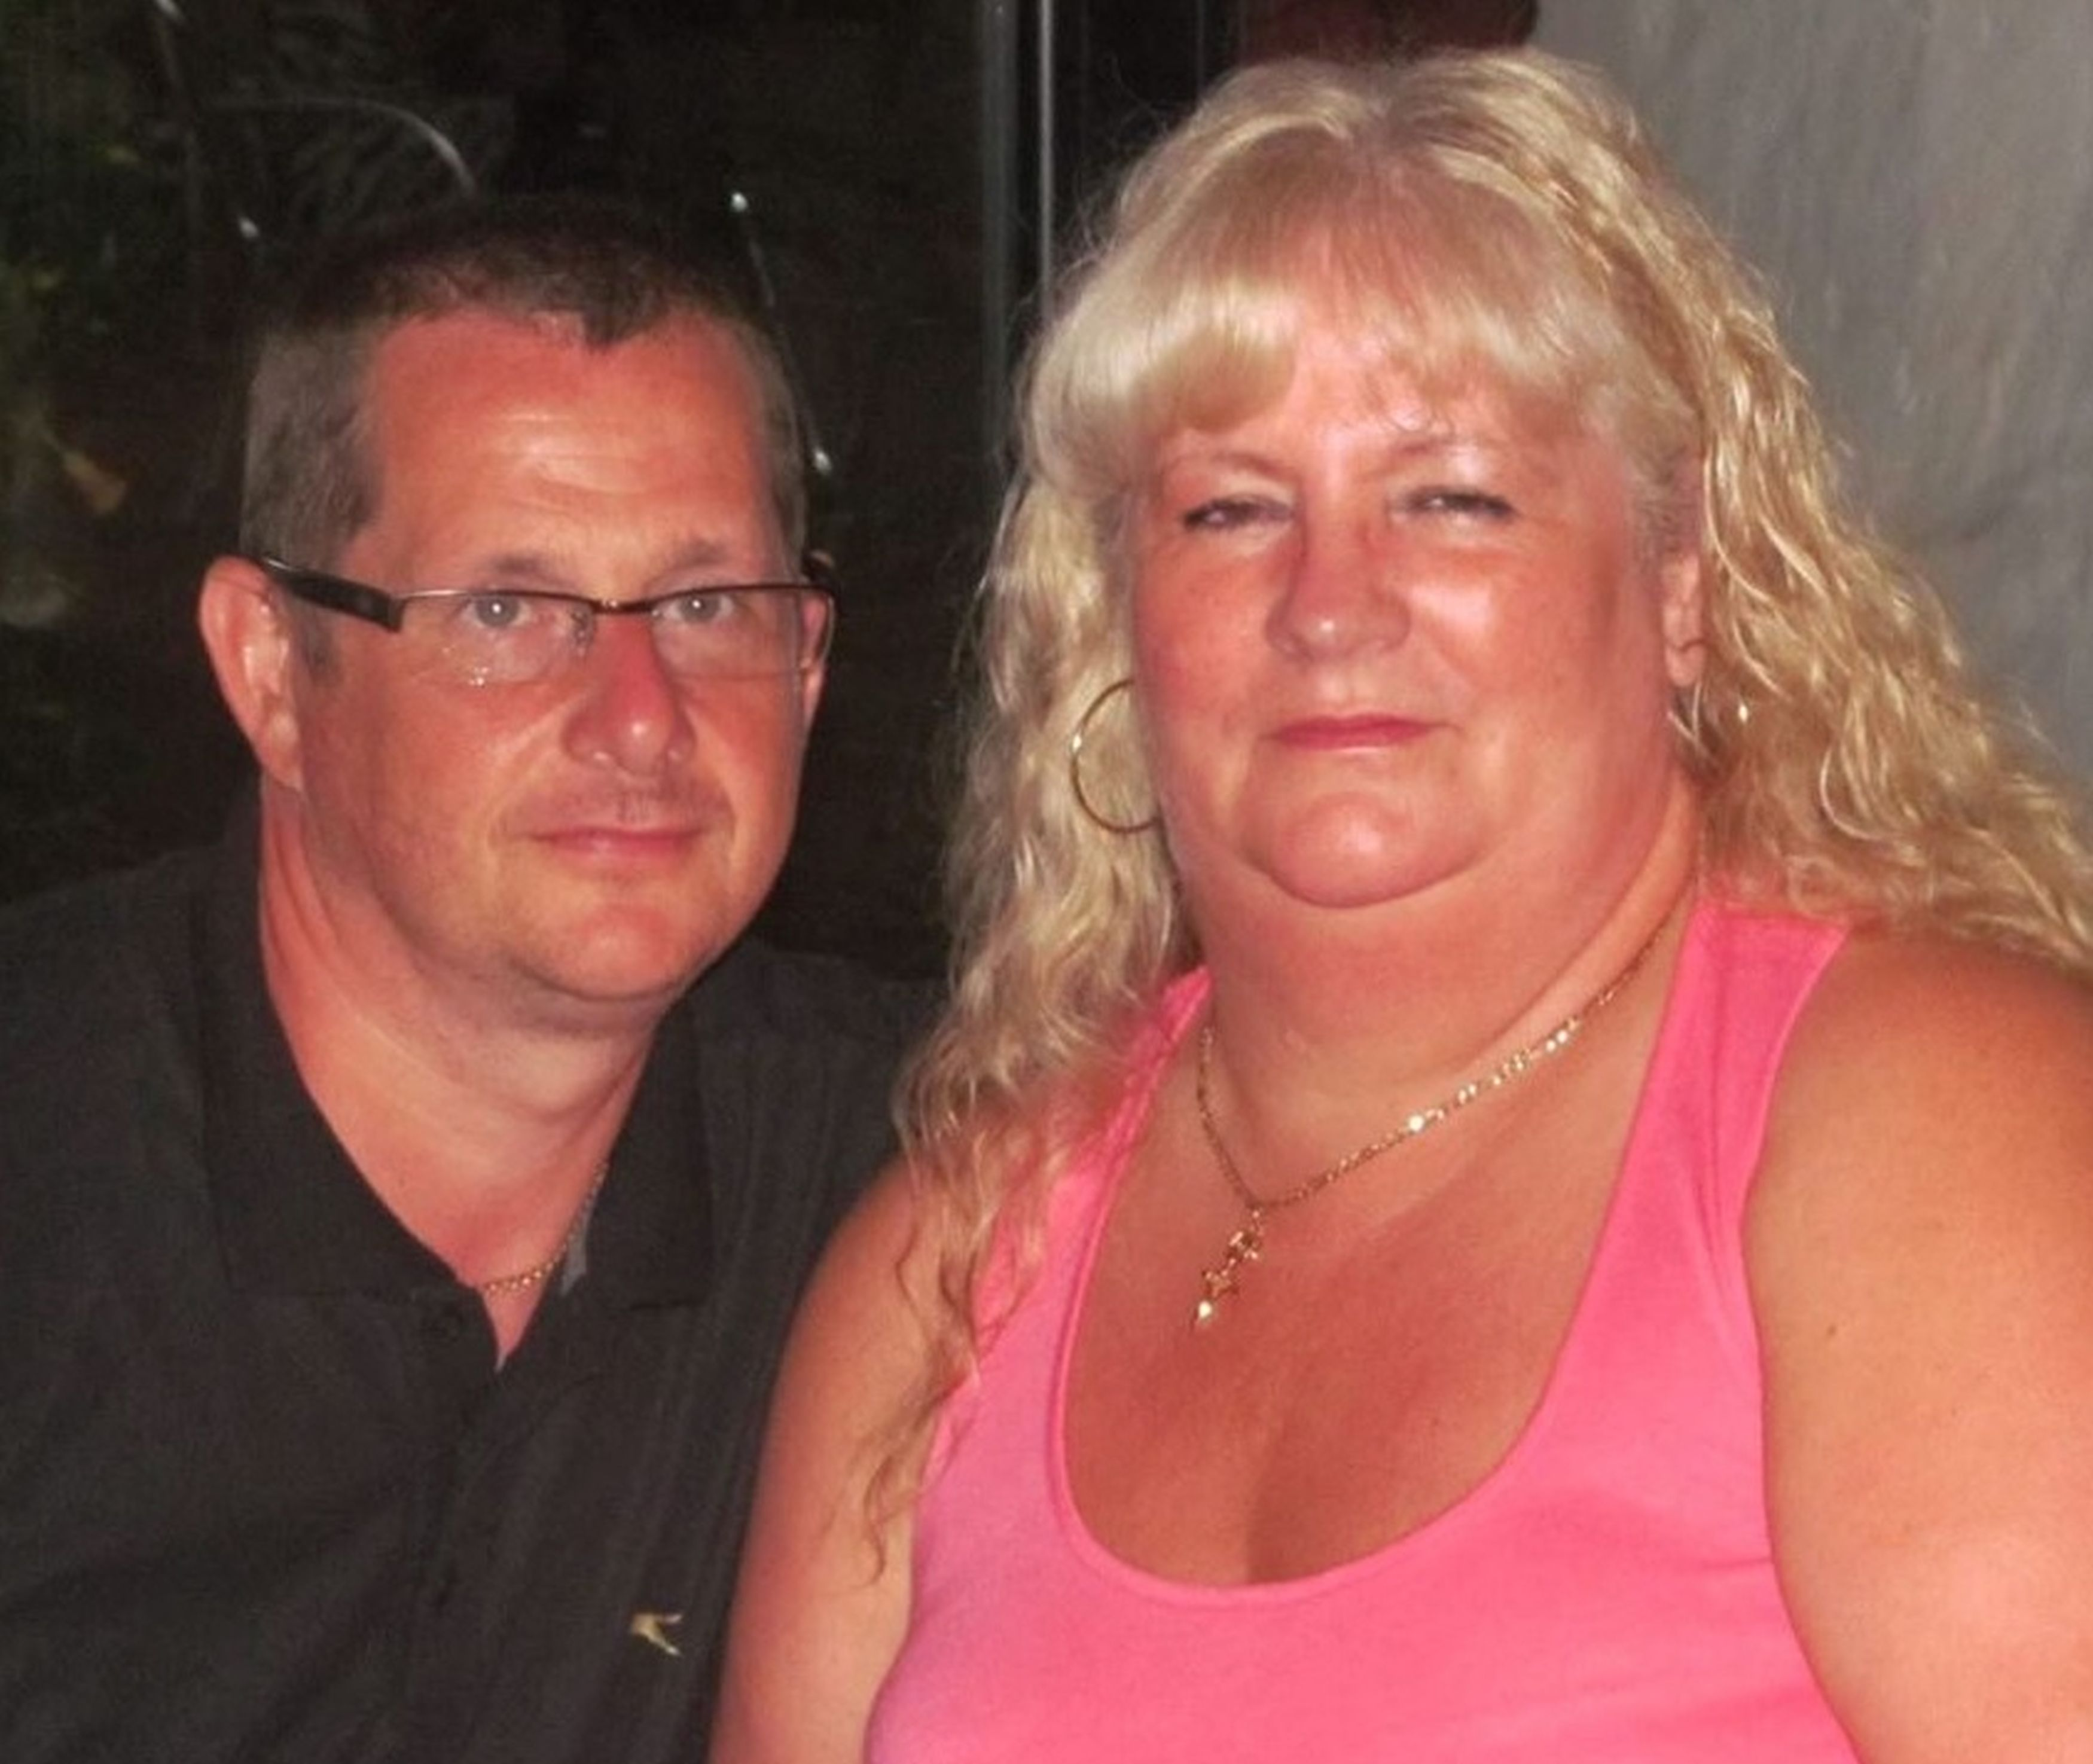 Peter McTaggart and his wife, Mary. Credit: Kennedy News and Media